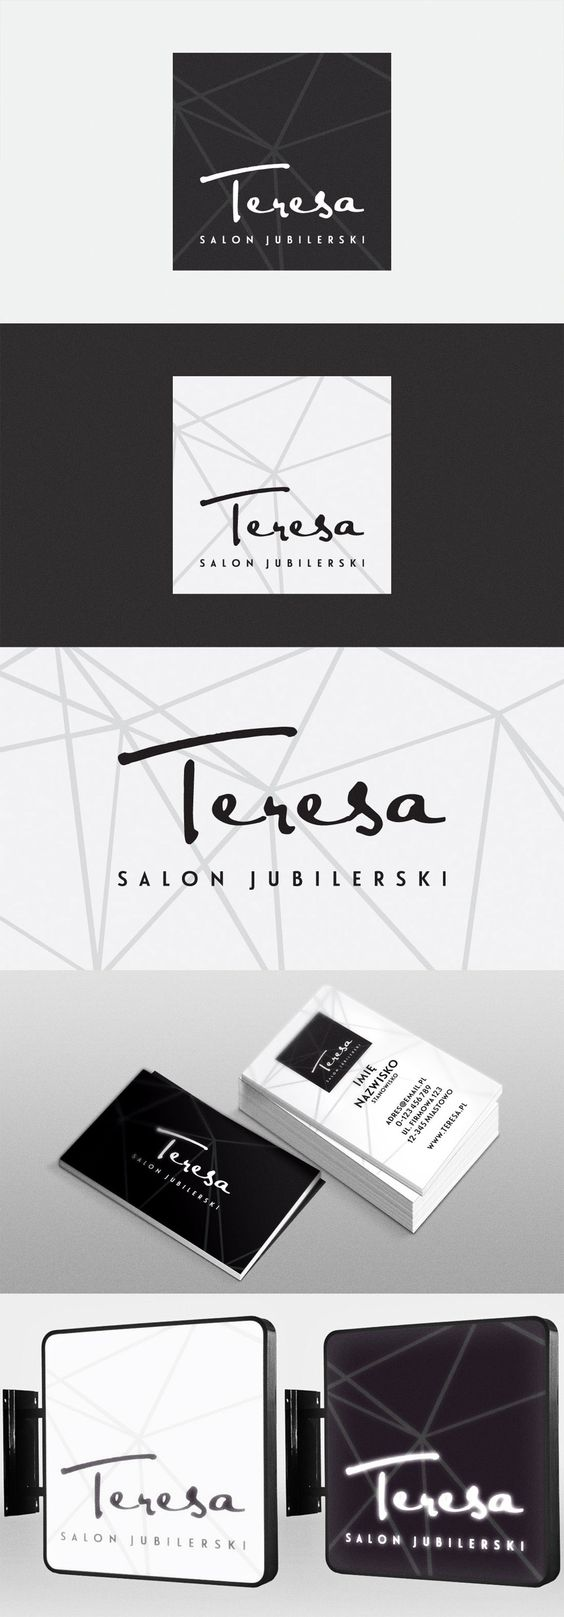 teresa jewelry logo business and more logos salons behance jewelry ...